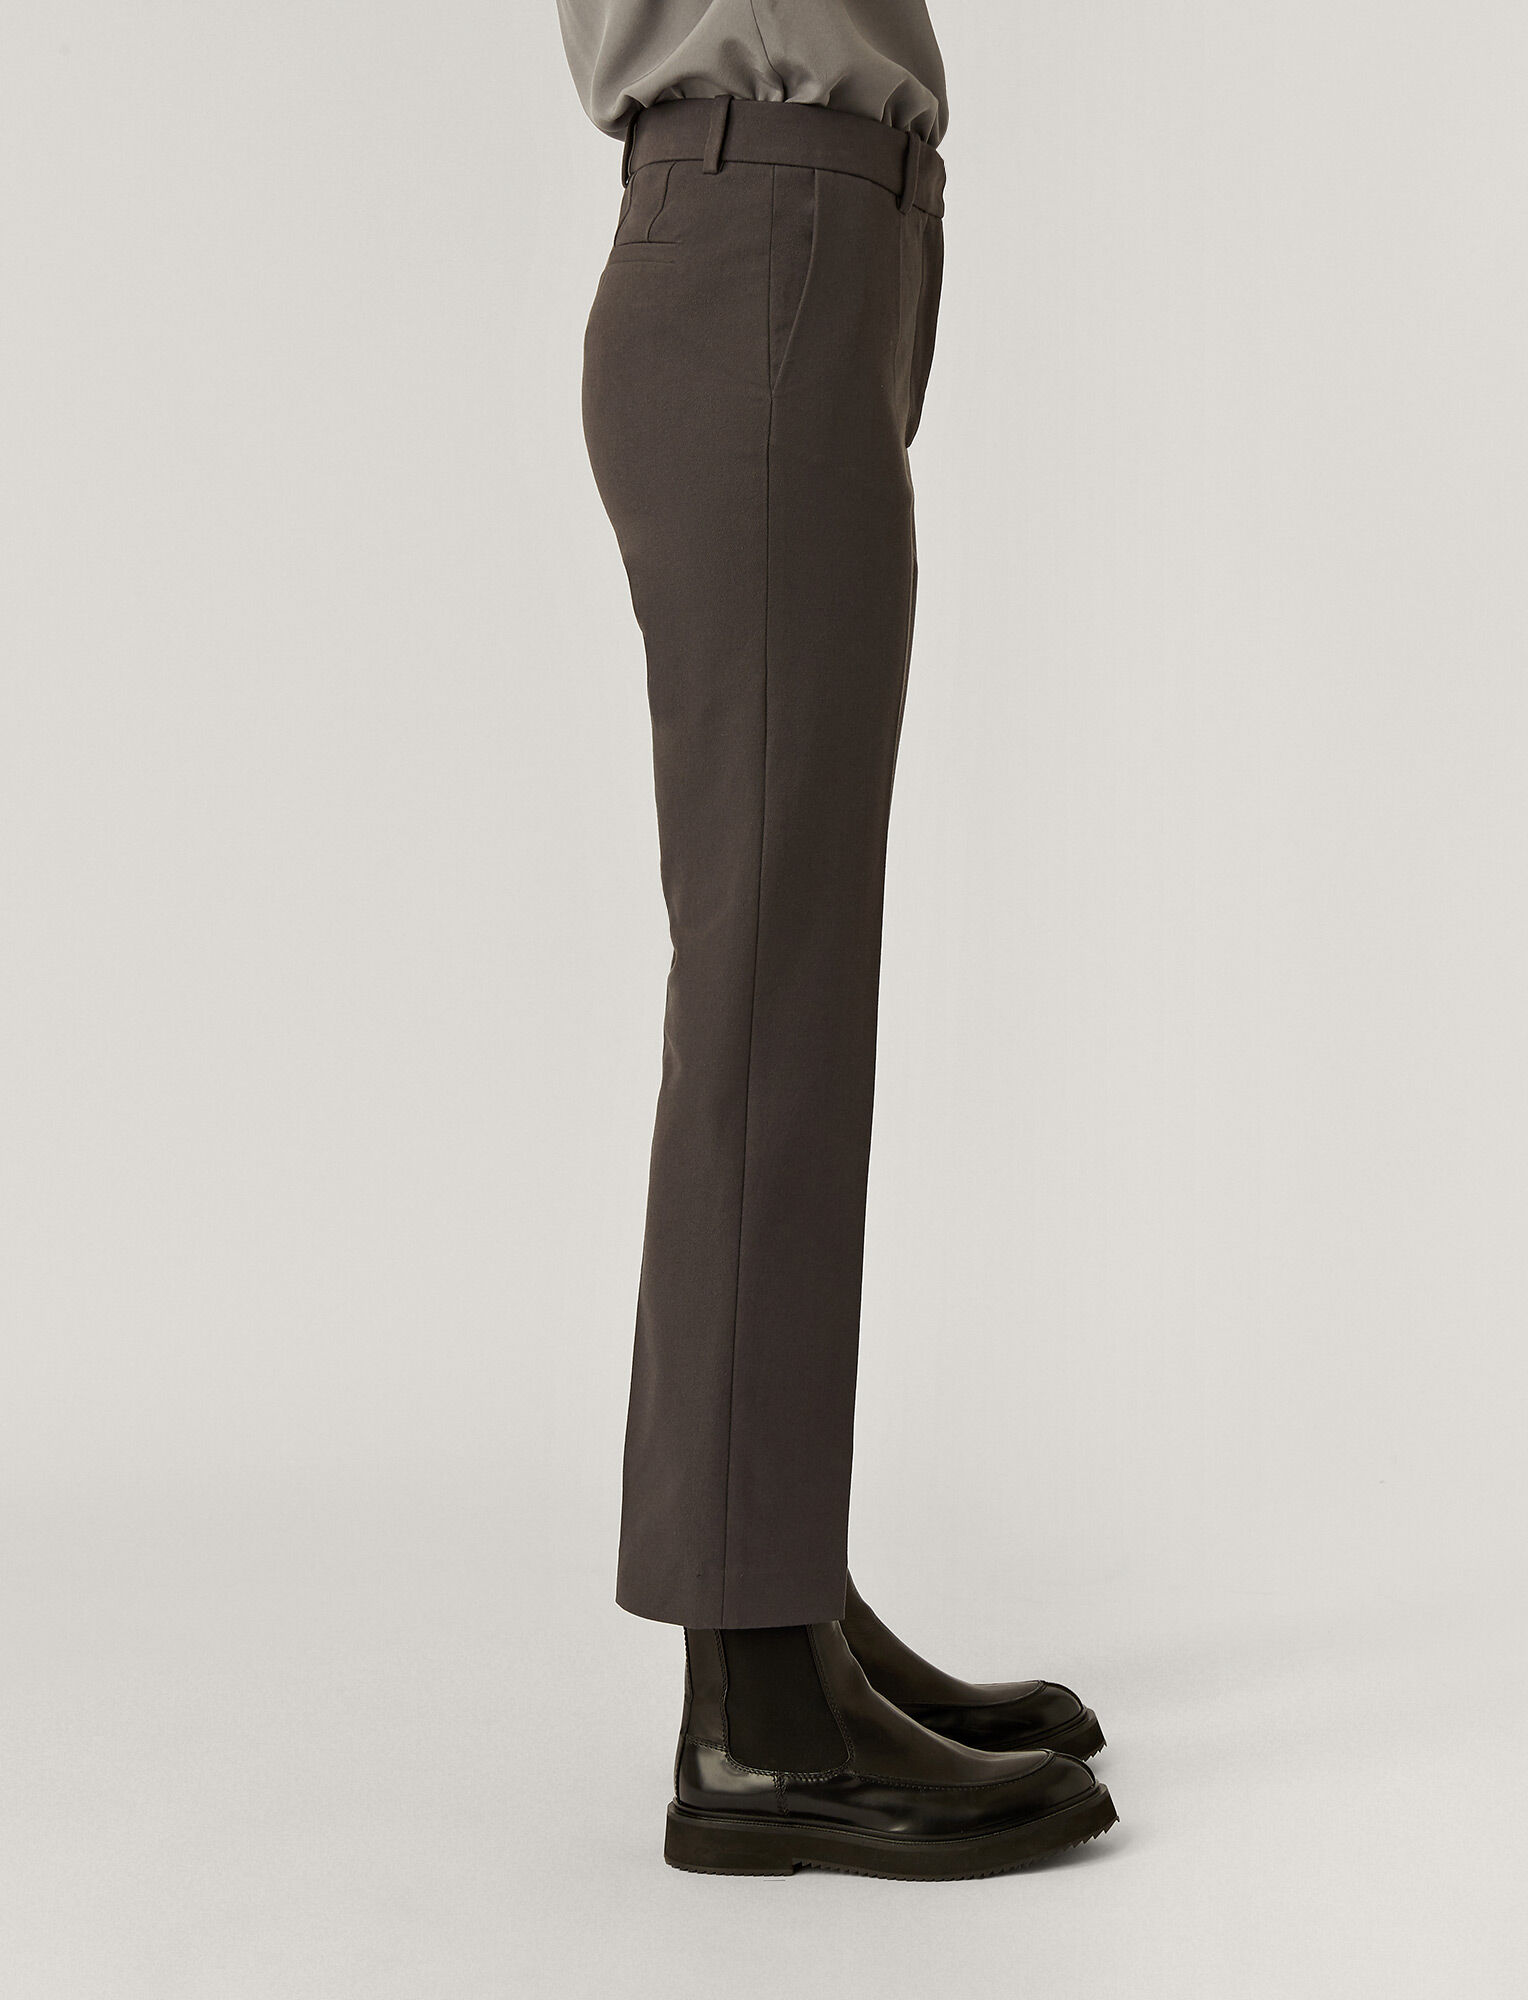 Joseph, Gabardine Stretch Coleman Trousers, in CAPERS